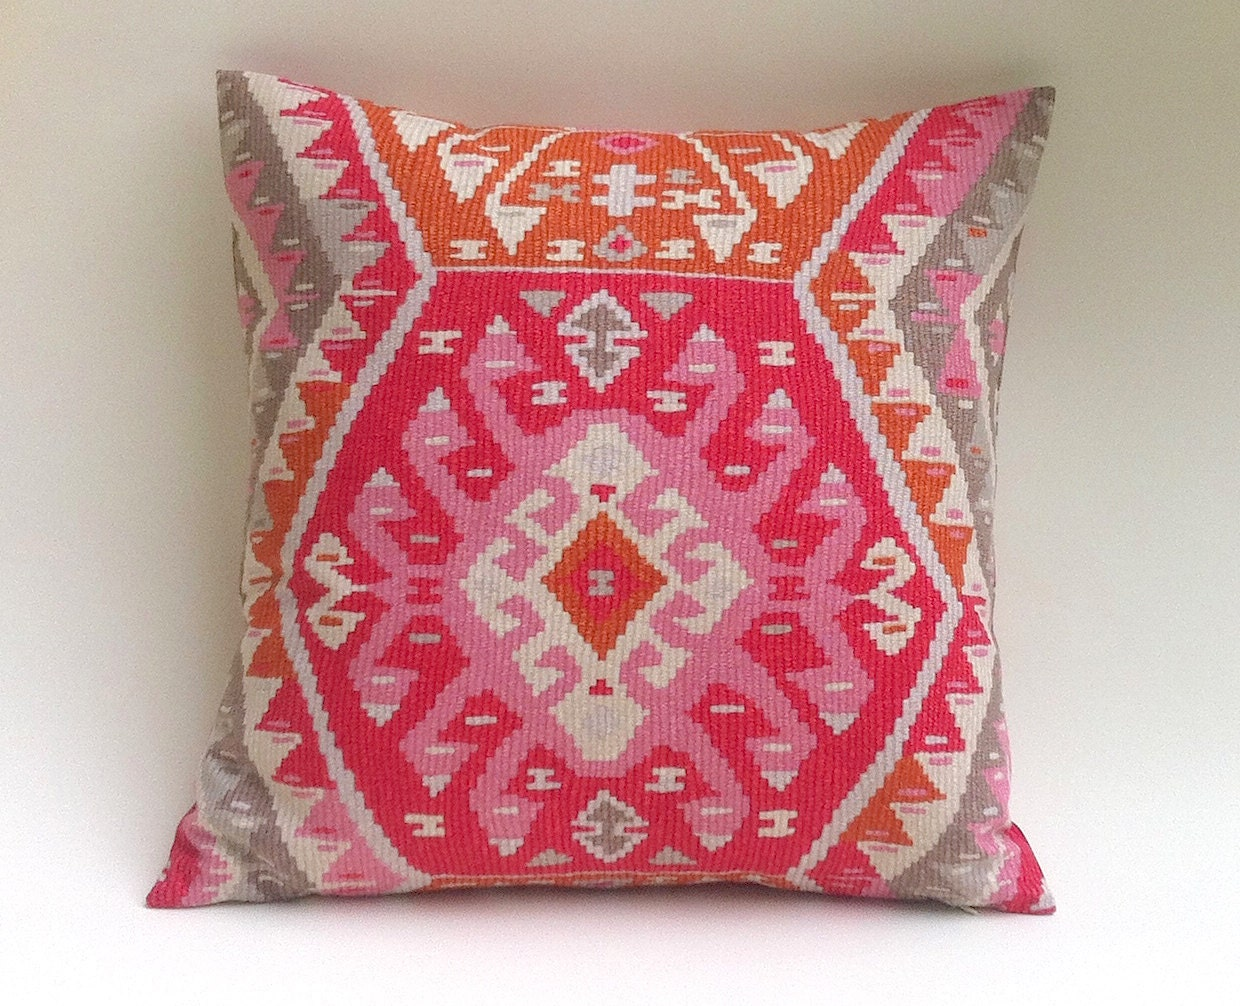 One PRINTED Canyon Sunset Pink Decorative Zipper Pillow Cover